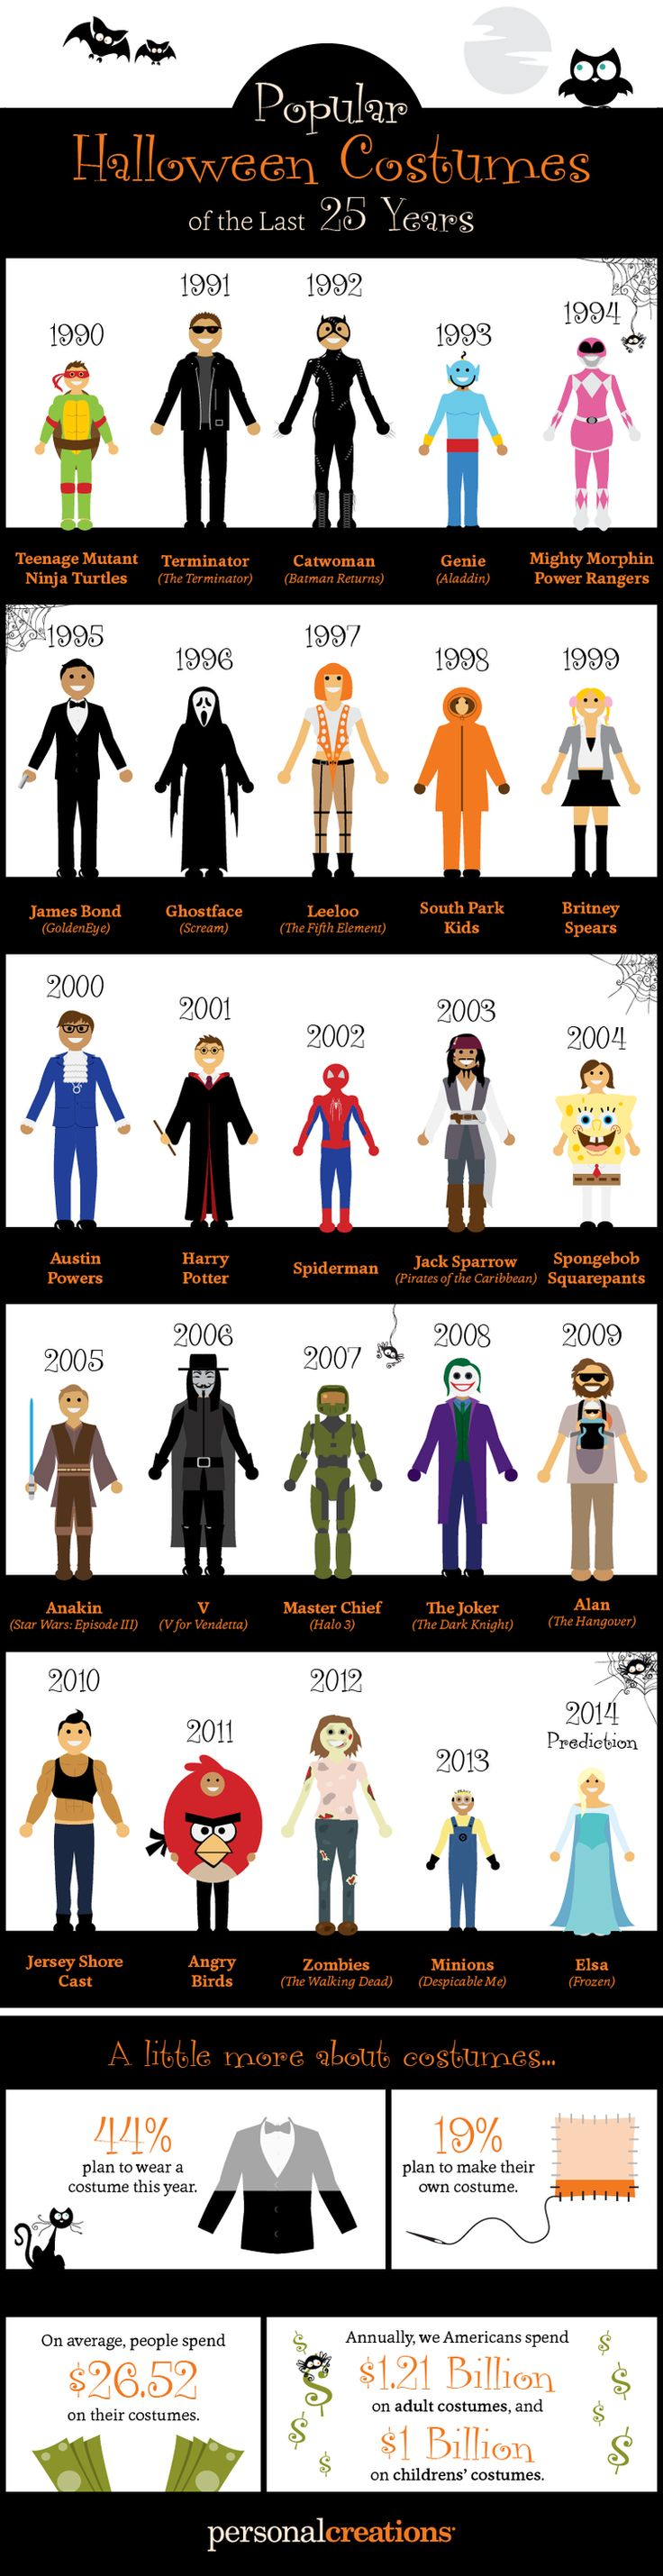 Most Popular Halloween Costumes Of The Last 25 Years - Infographic